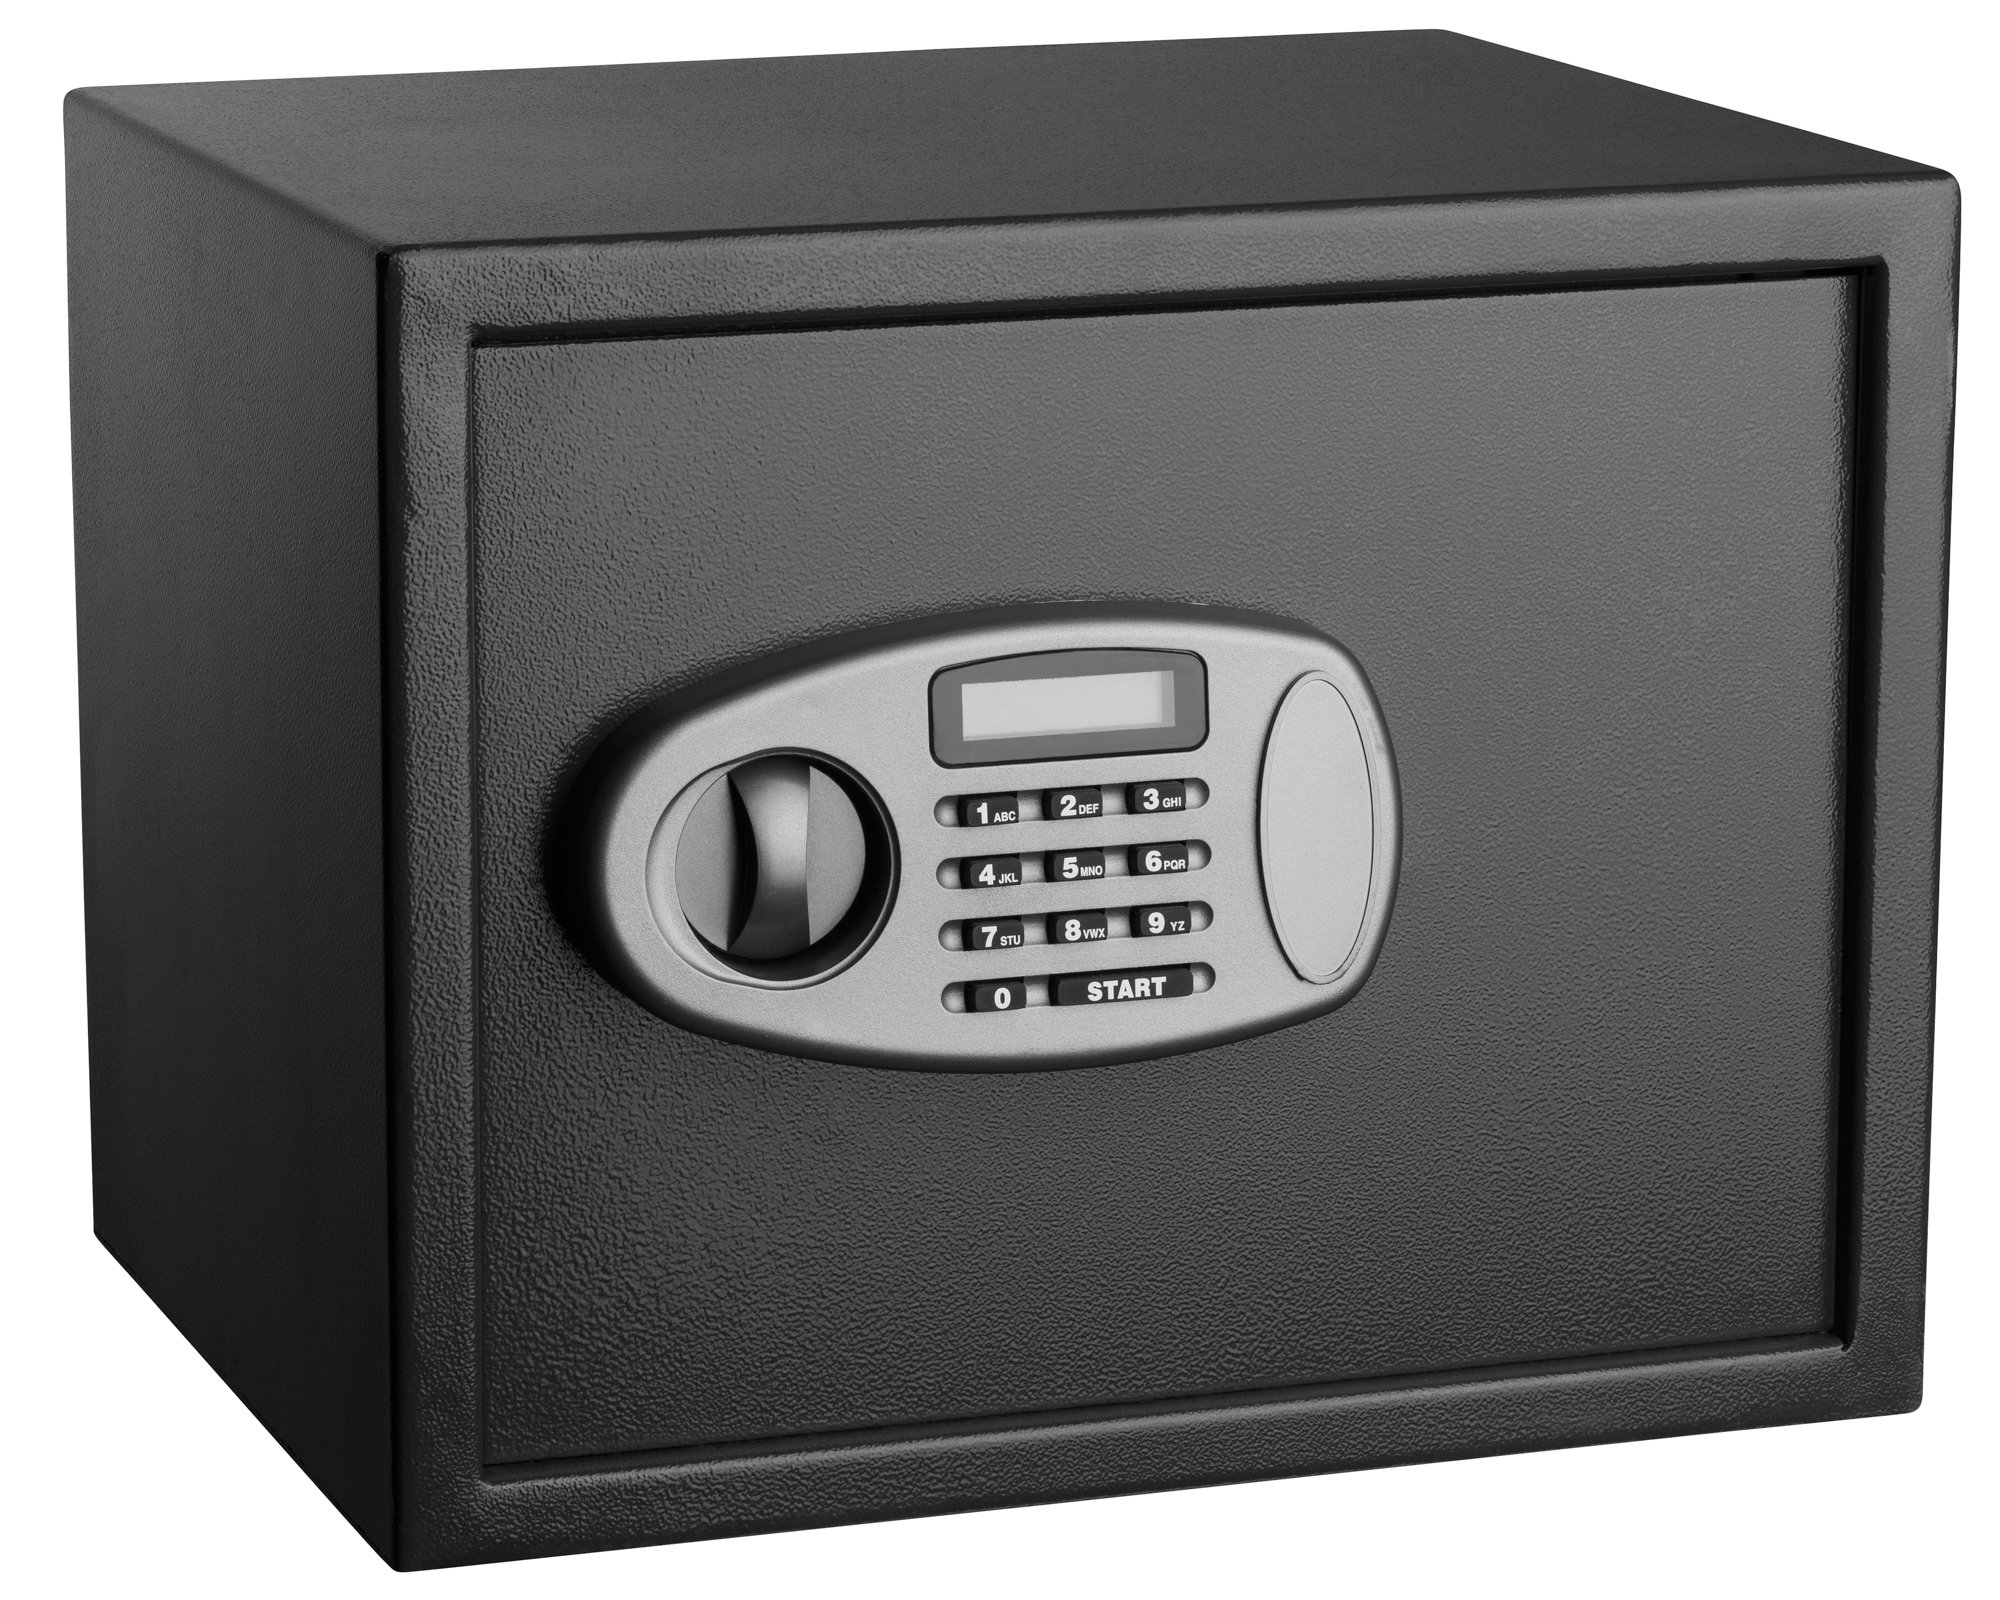 AdirOffice Security Safe with Digital Lock - Black - 1.25 Cubic Feet